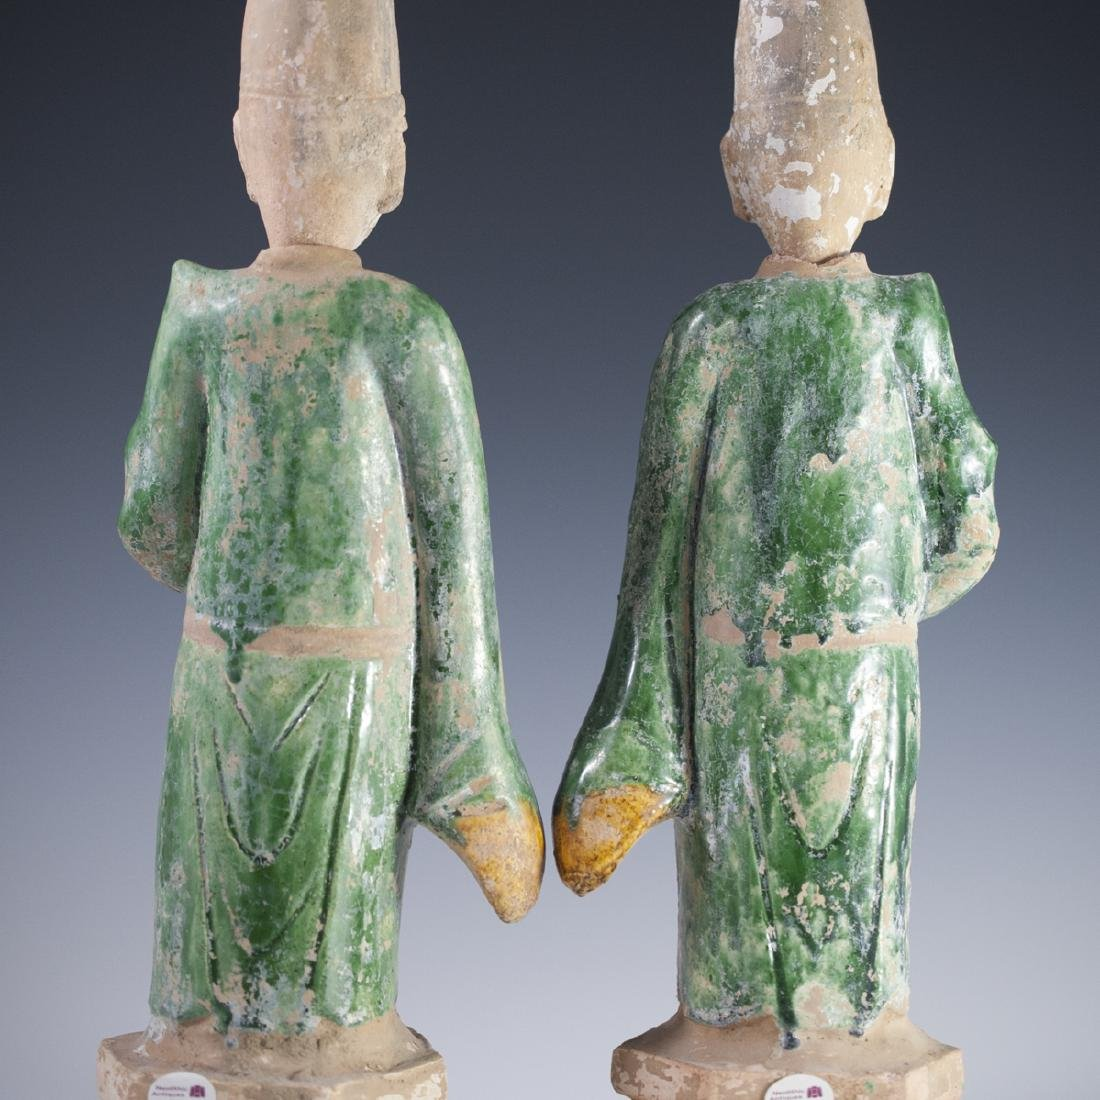 Ming Dynasty Pottery Sculptures - 7